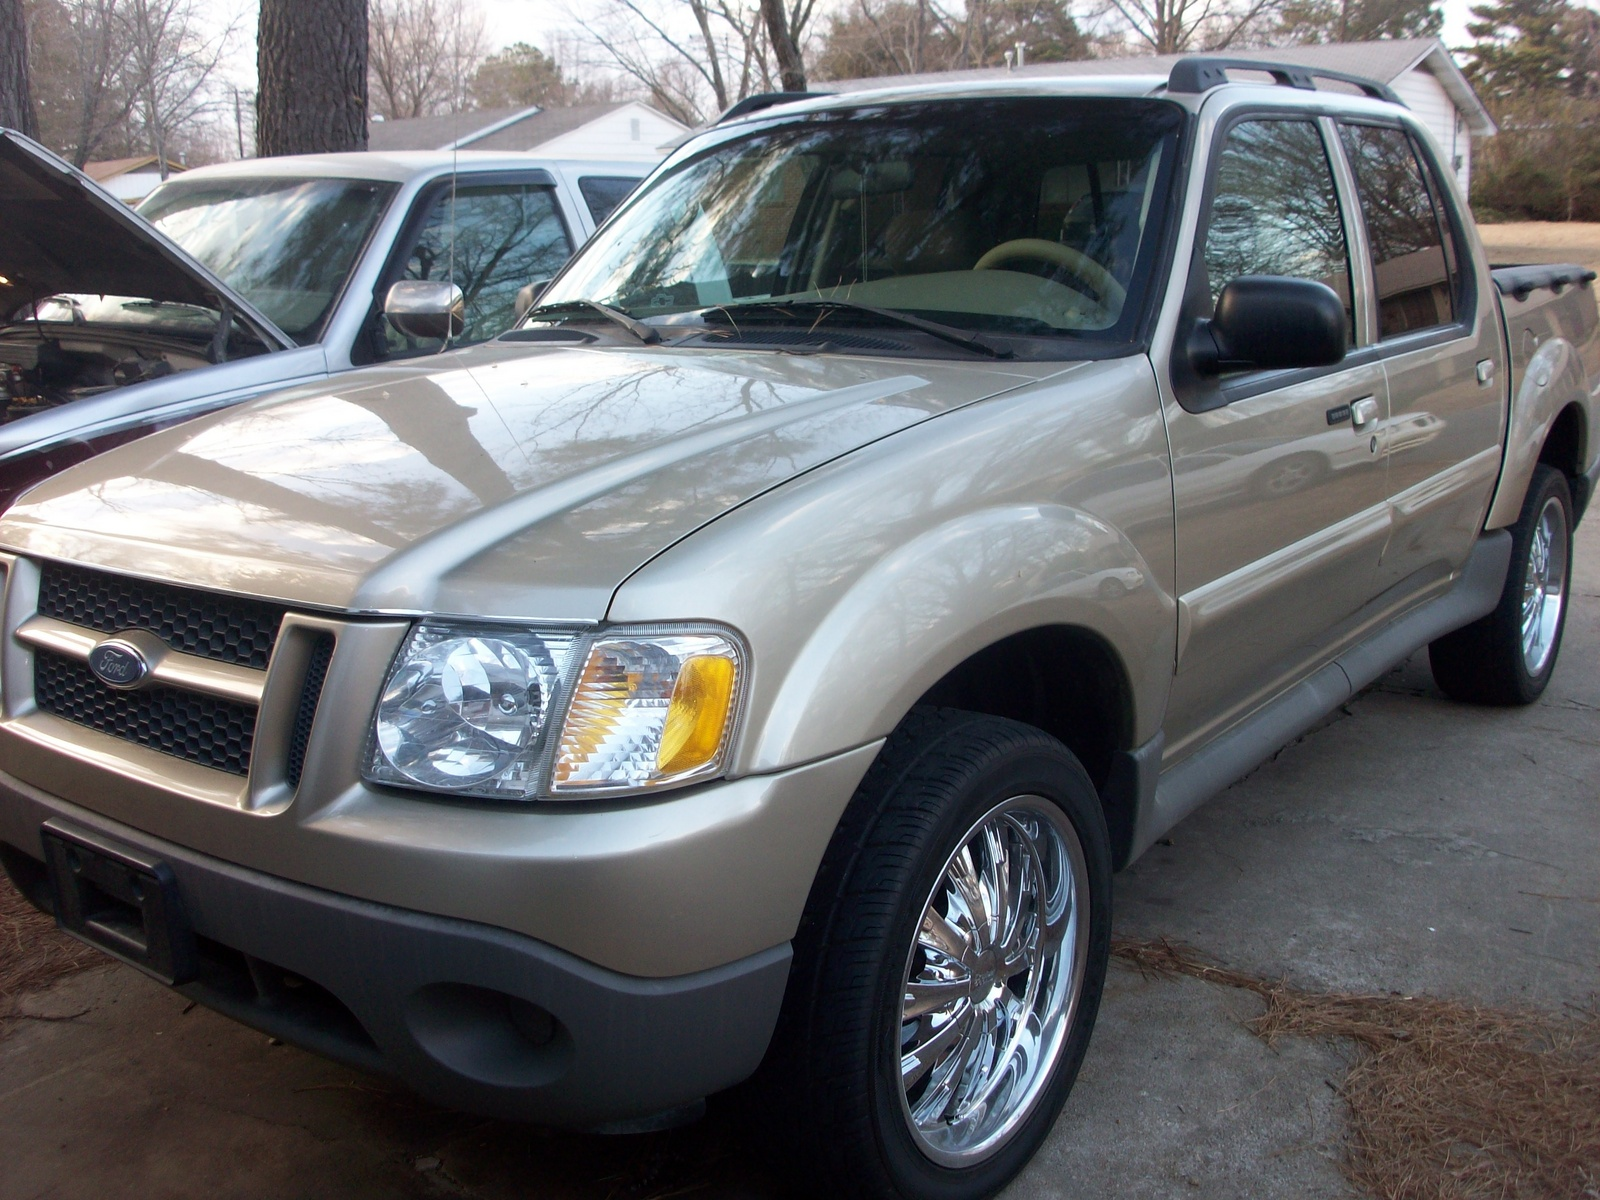 2003 ford explorer sport trac 4 dr xls crew cab sb picture exterior. Cars Review. Best American Auto & Cars Review